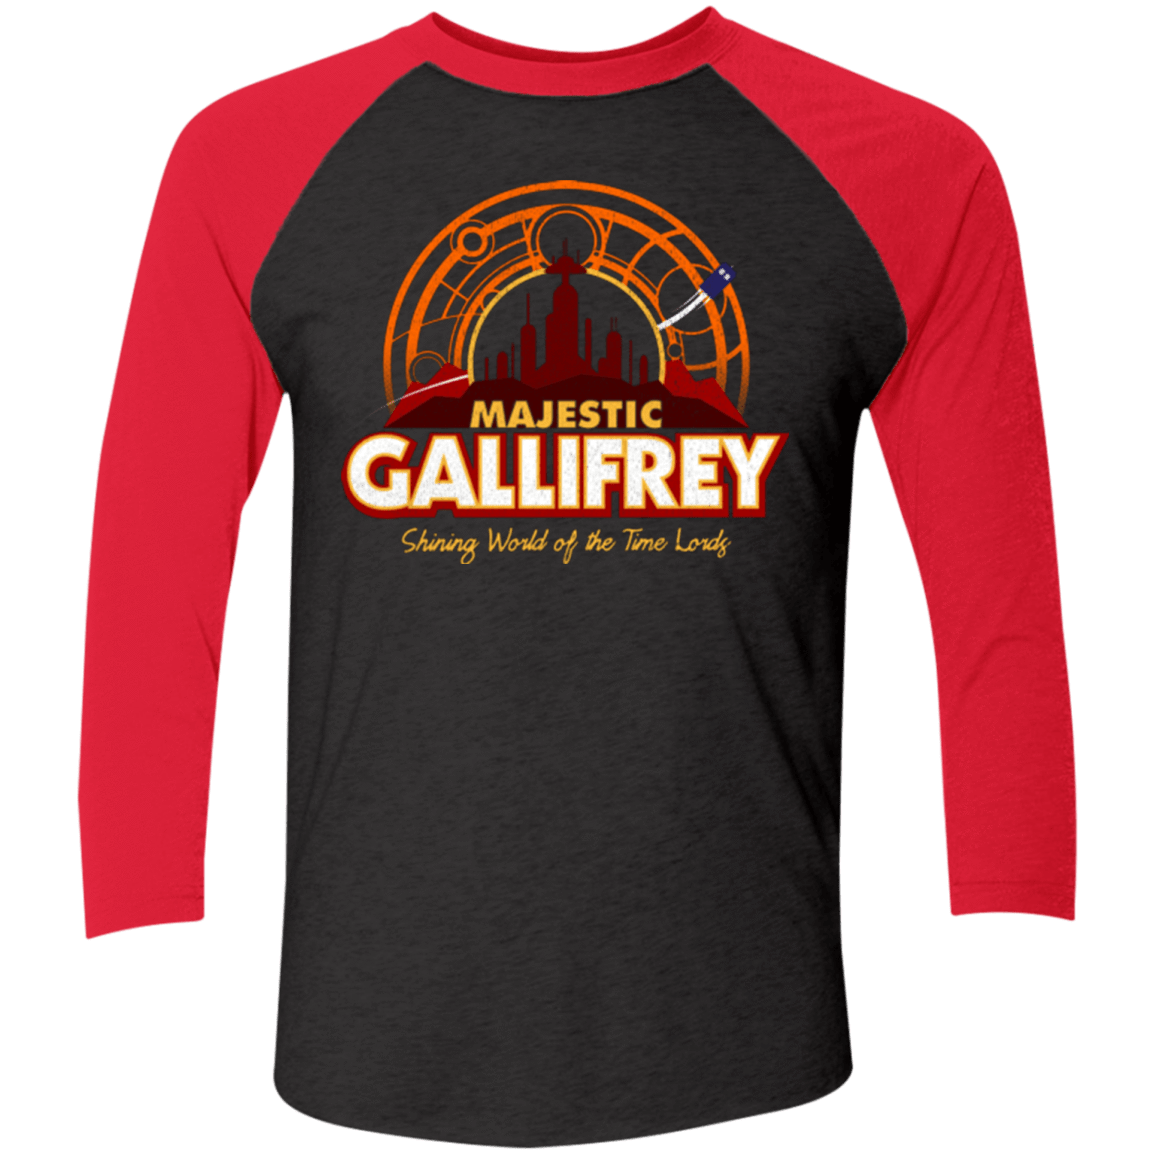 T-Shirts Vintage Black/Vintage Red / X-Small Majestic Gallifrey Triblend 3/4 Sleeve